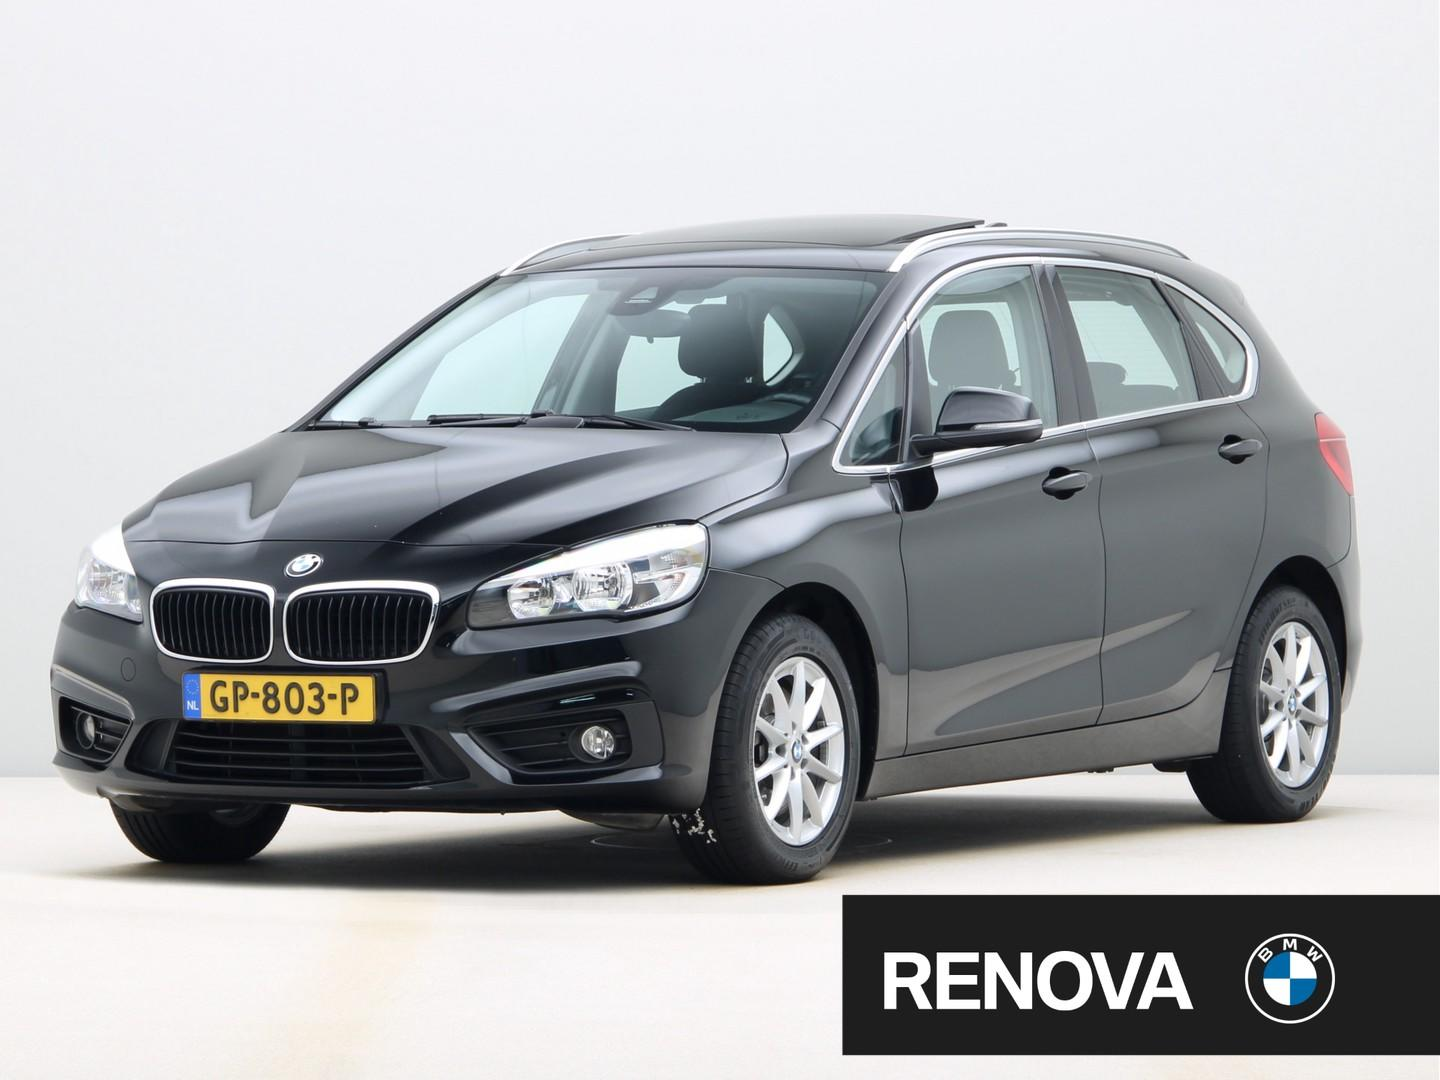 Bmw 2 serie Active tourer 218i essential trekhaak met afneembare kogel